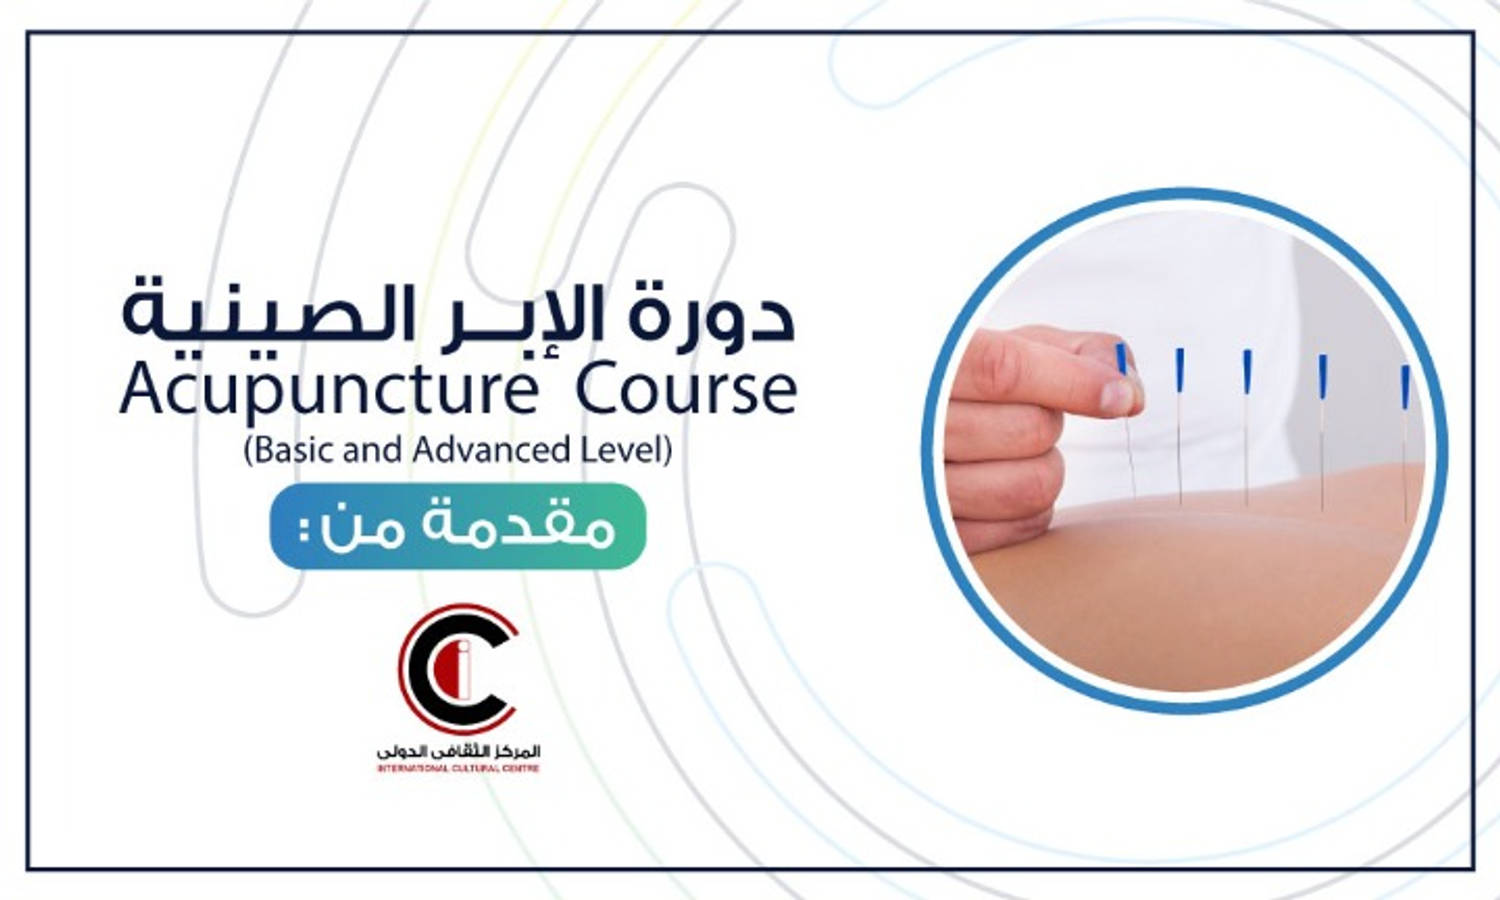 Acupuncture Course (Basic and Advanced Level)